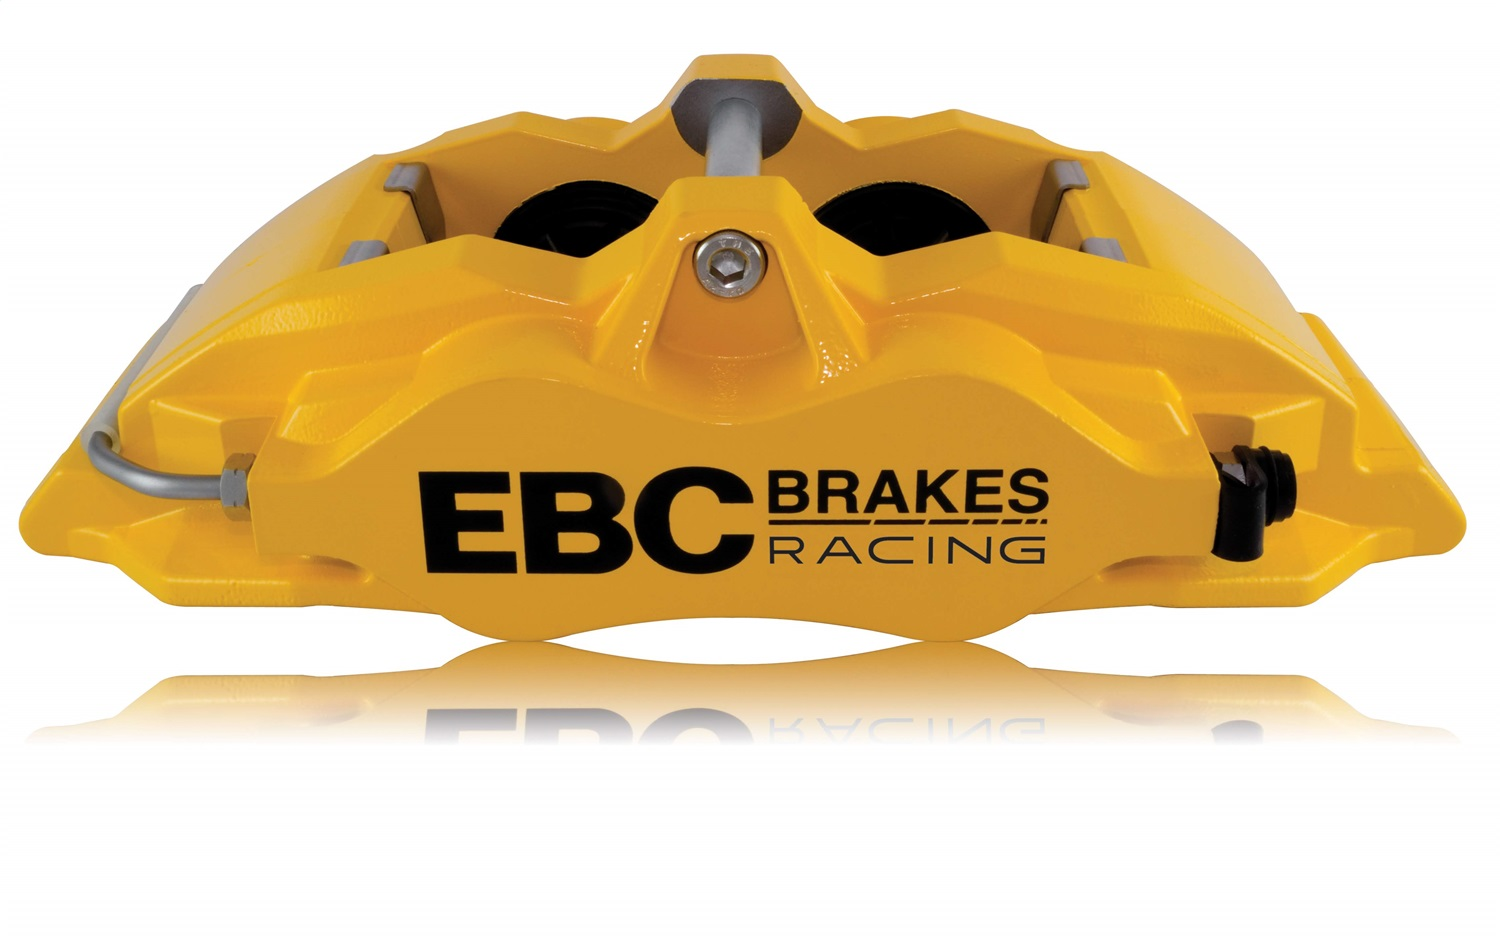 EBC Brakes BC4102YEL-L Apollo-4 Brake Calipers Fits 94-11 M3 RX-8